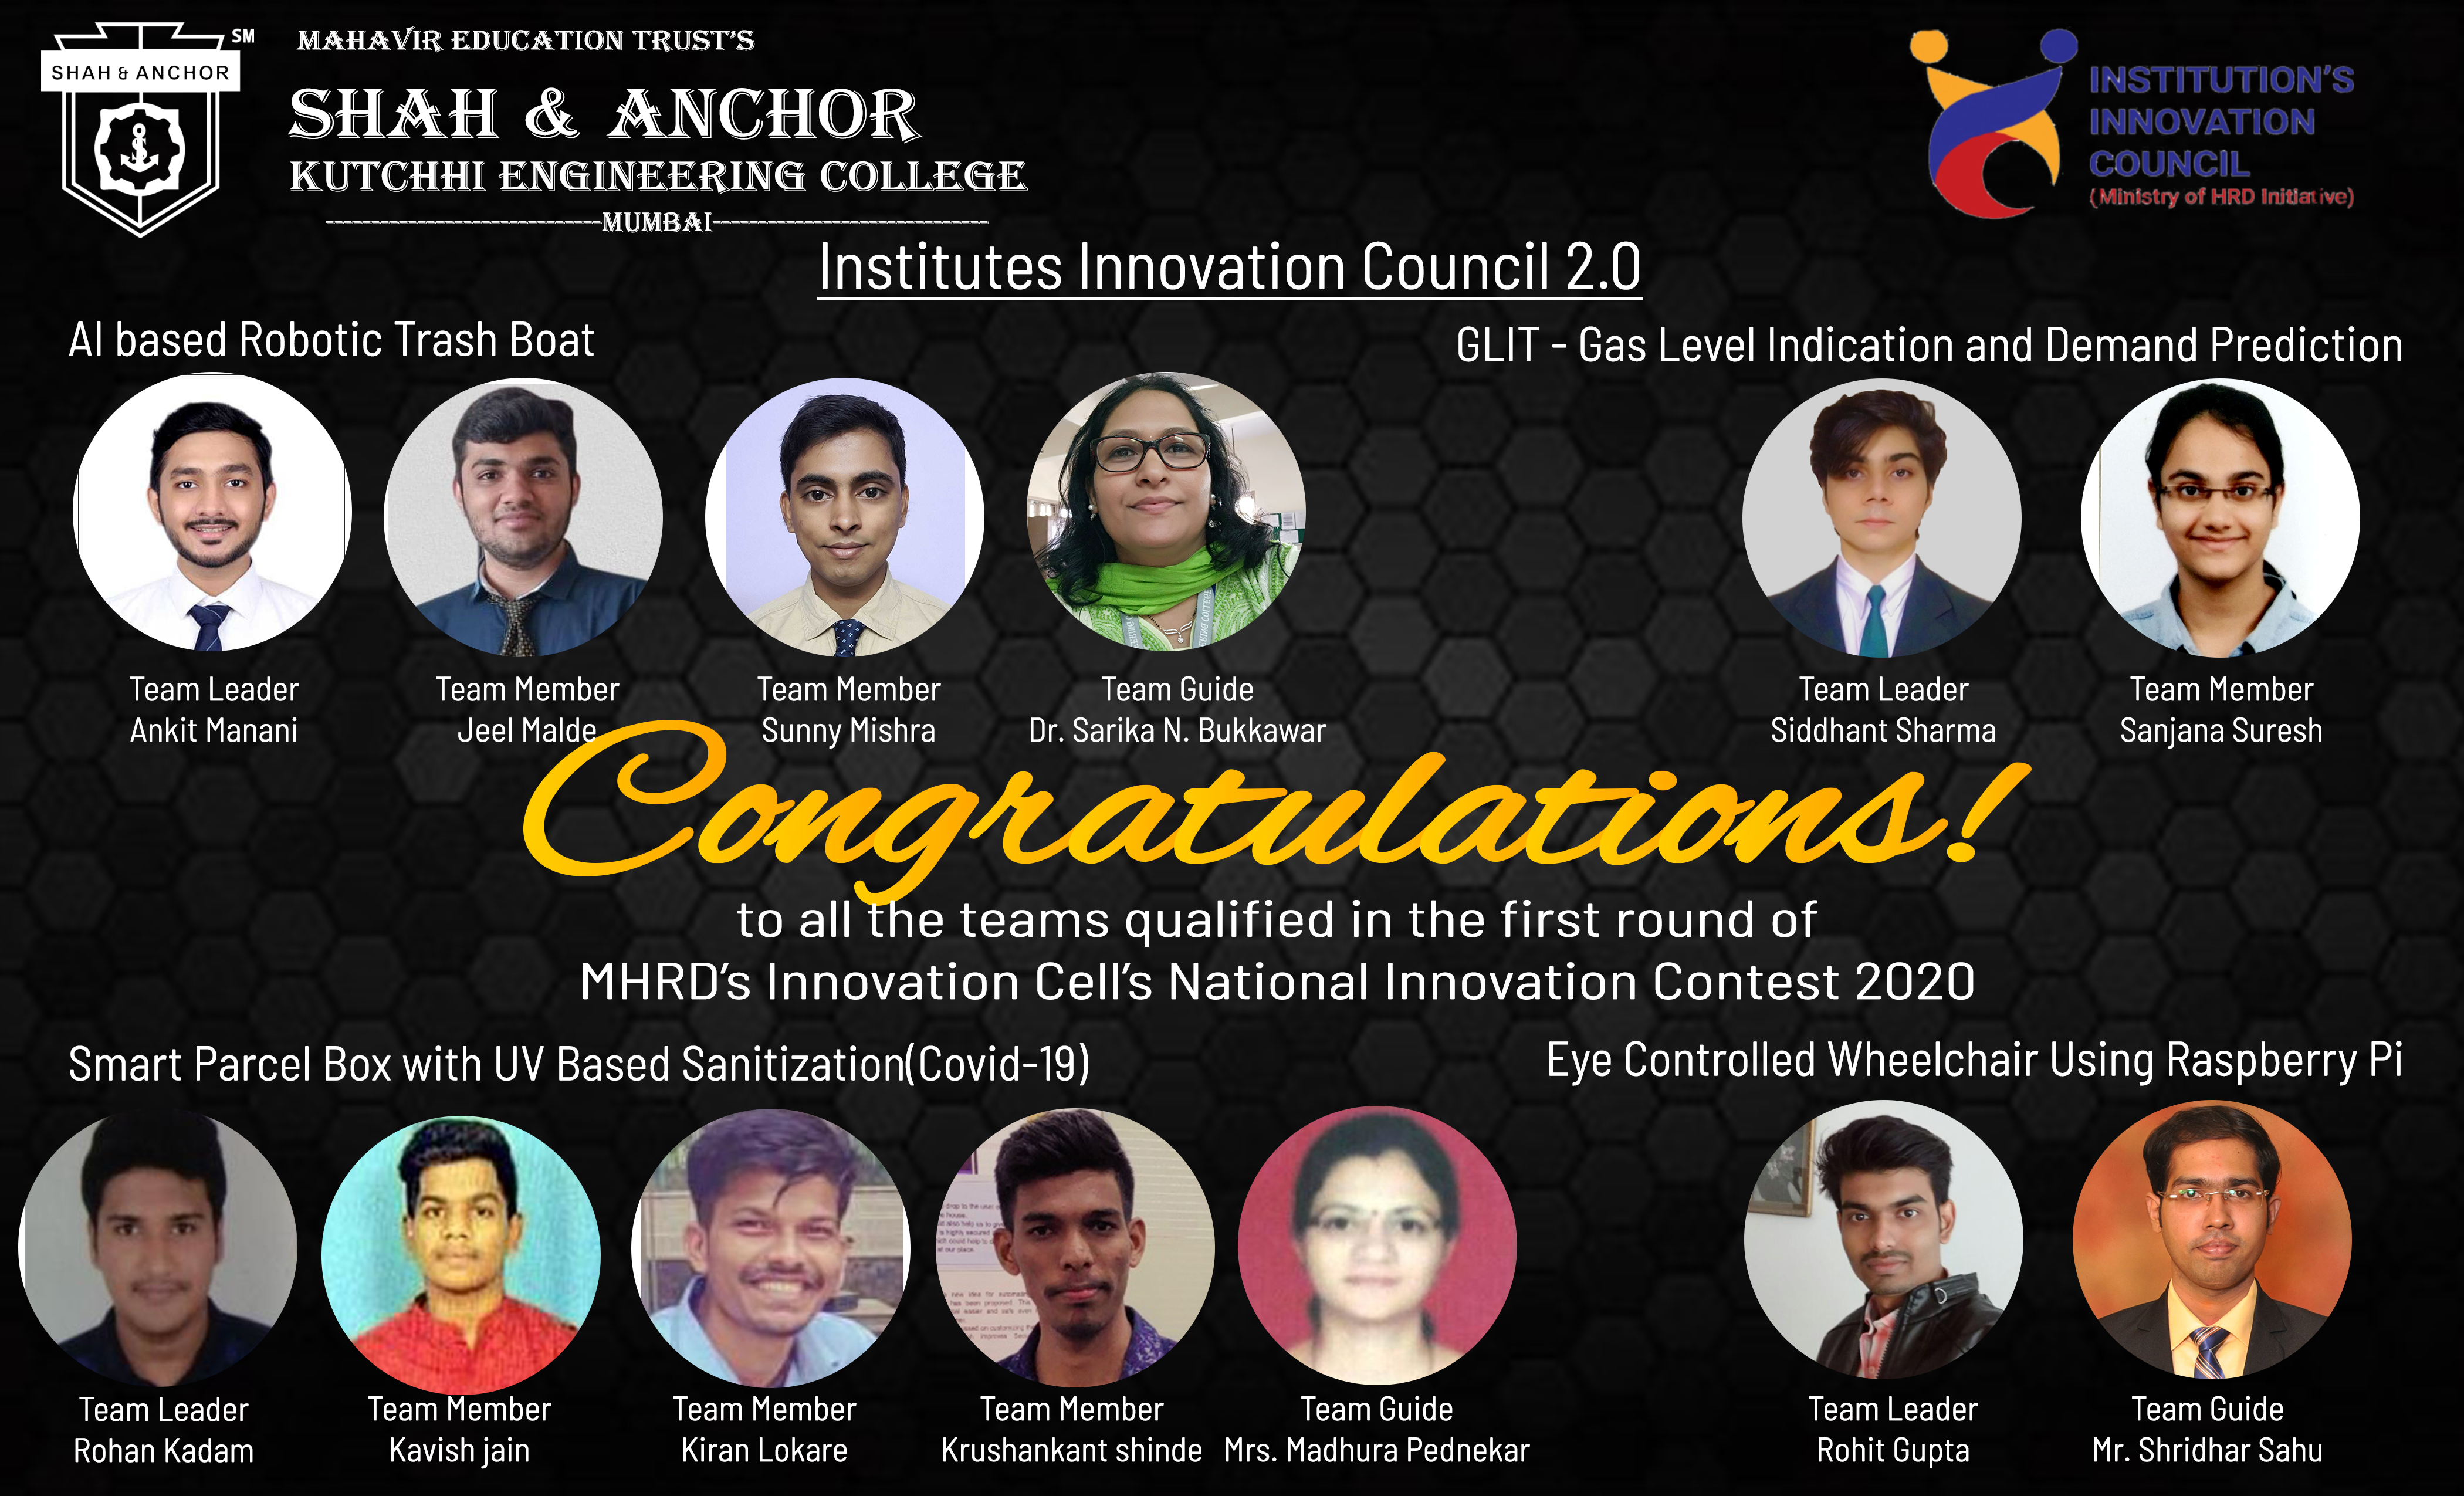 Congratulations to all the teams qualified in the first round of MHRD's Innovations Cells's National Innovation Contest 2020